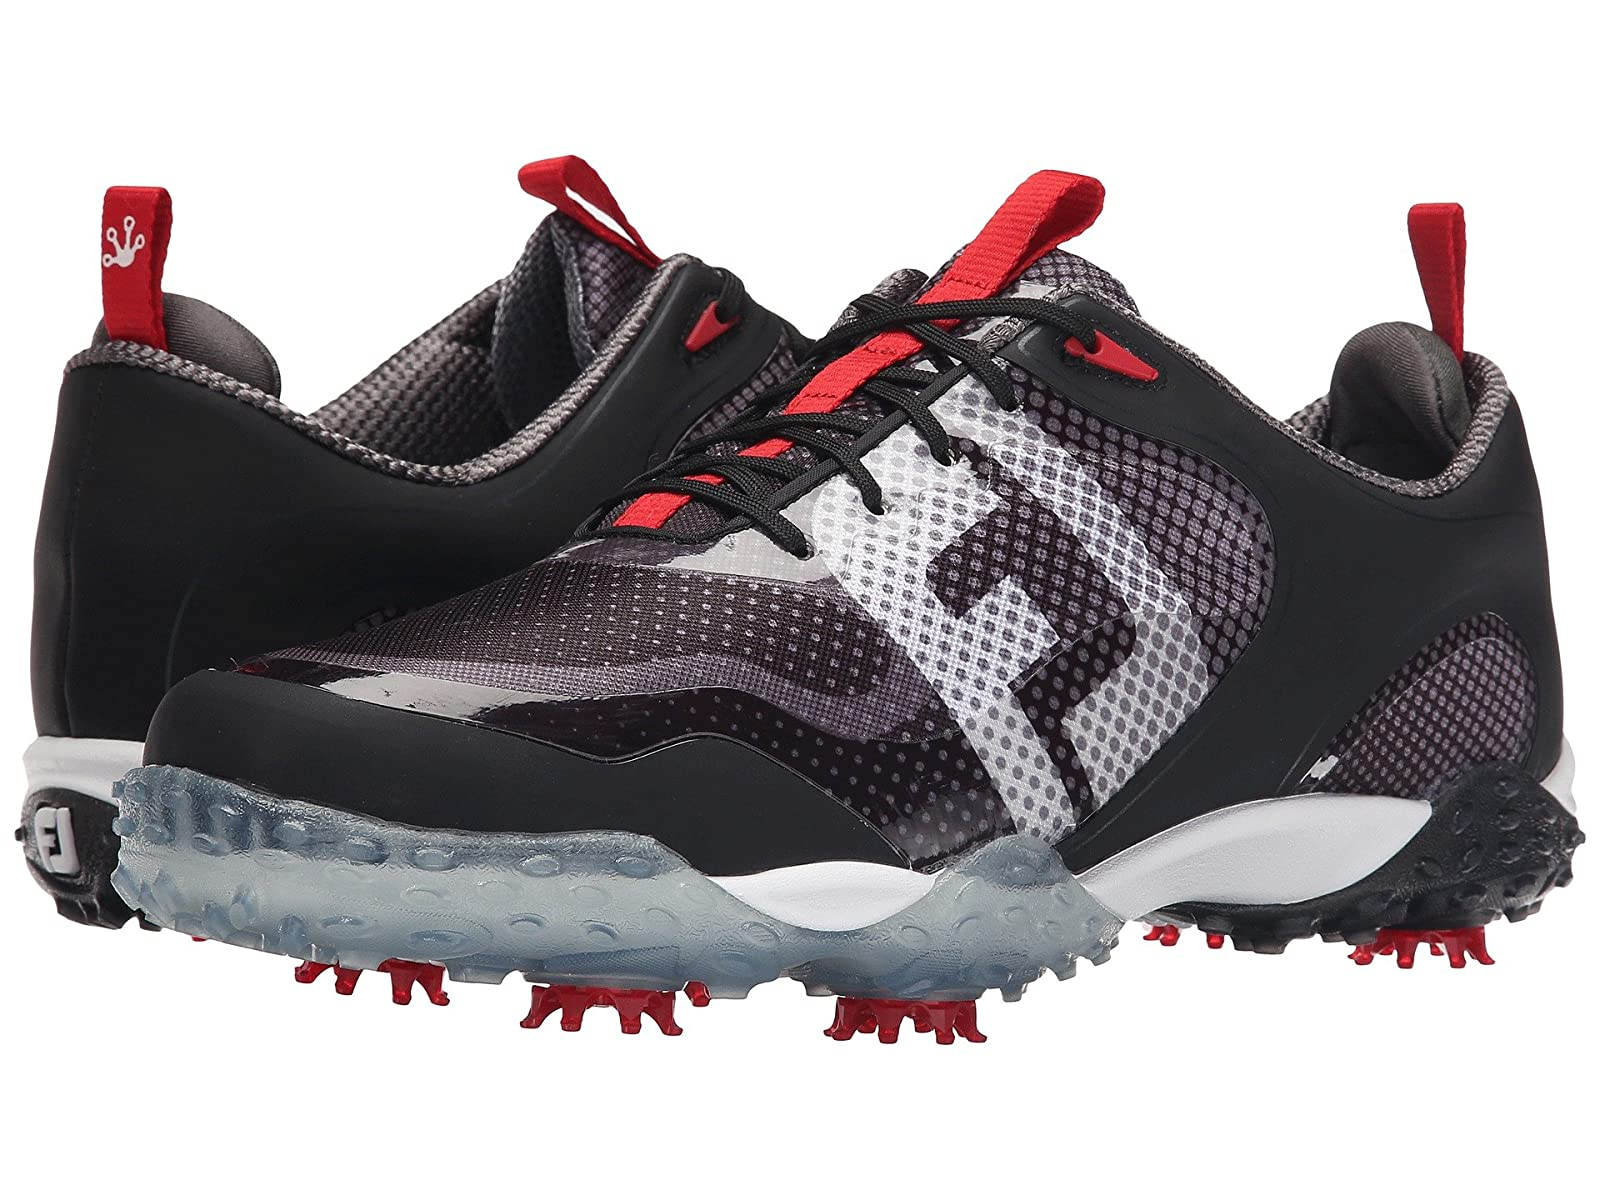 FootJoy FreestyleCheap and distinctive eye-catching shoes